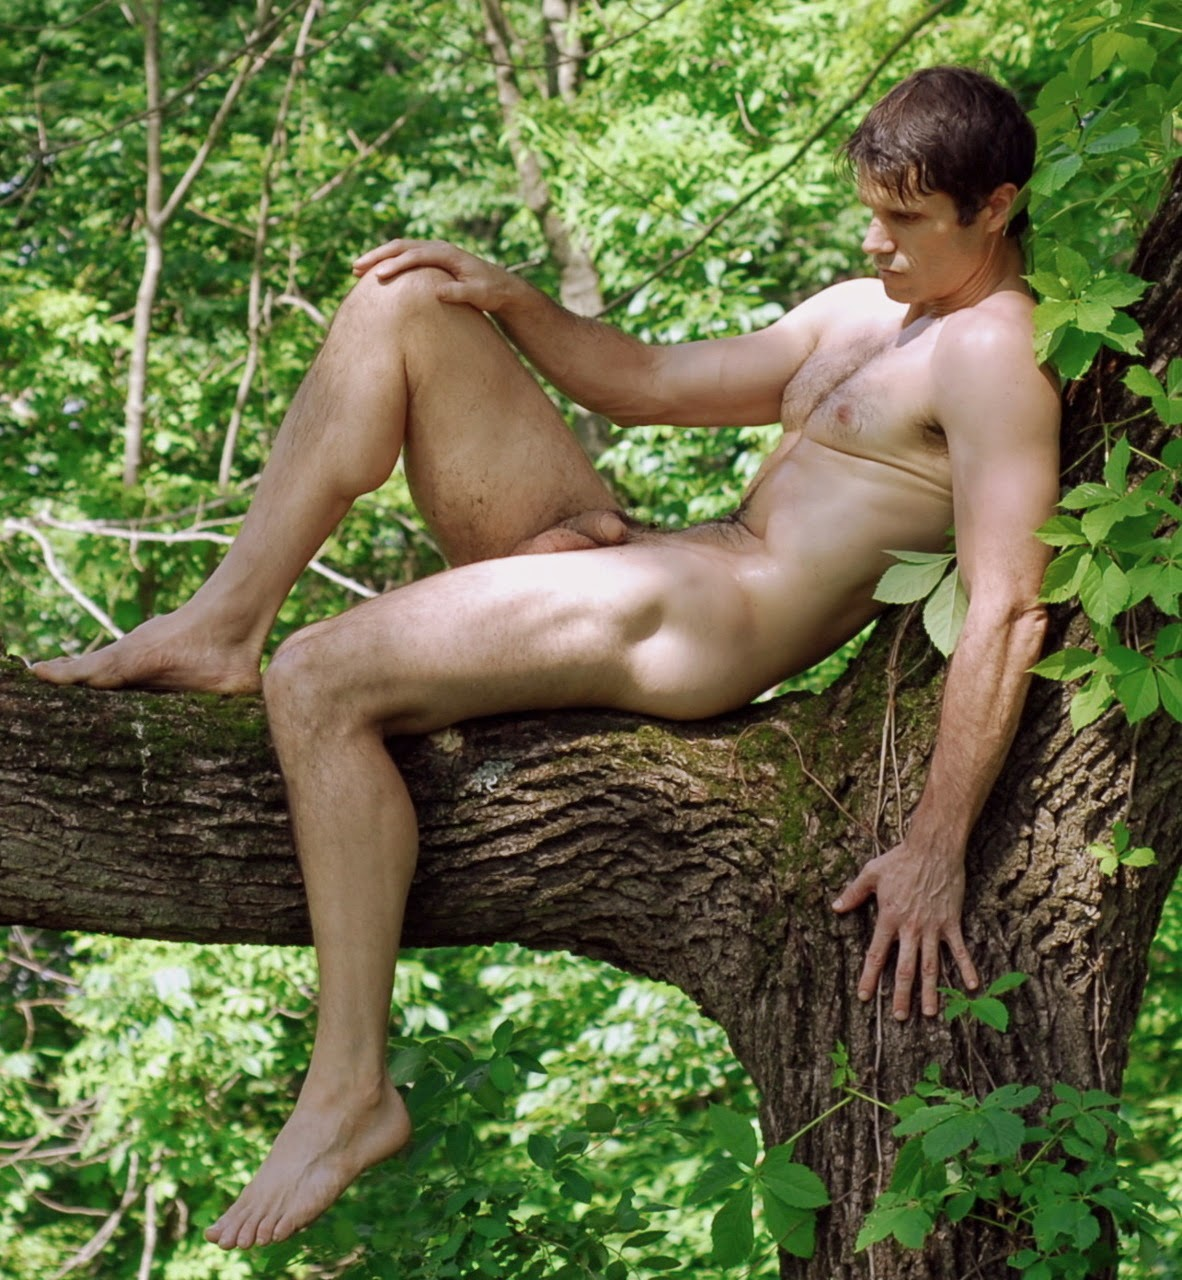 Adult male nude outdoor sports gay this guy 6